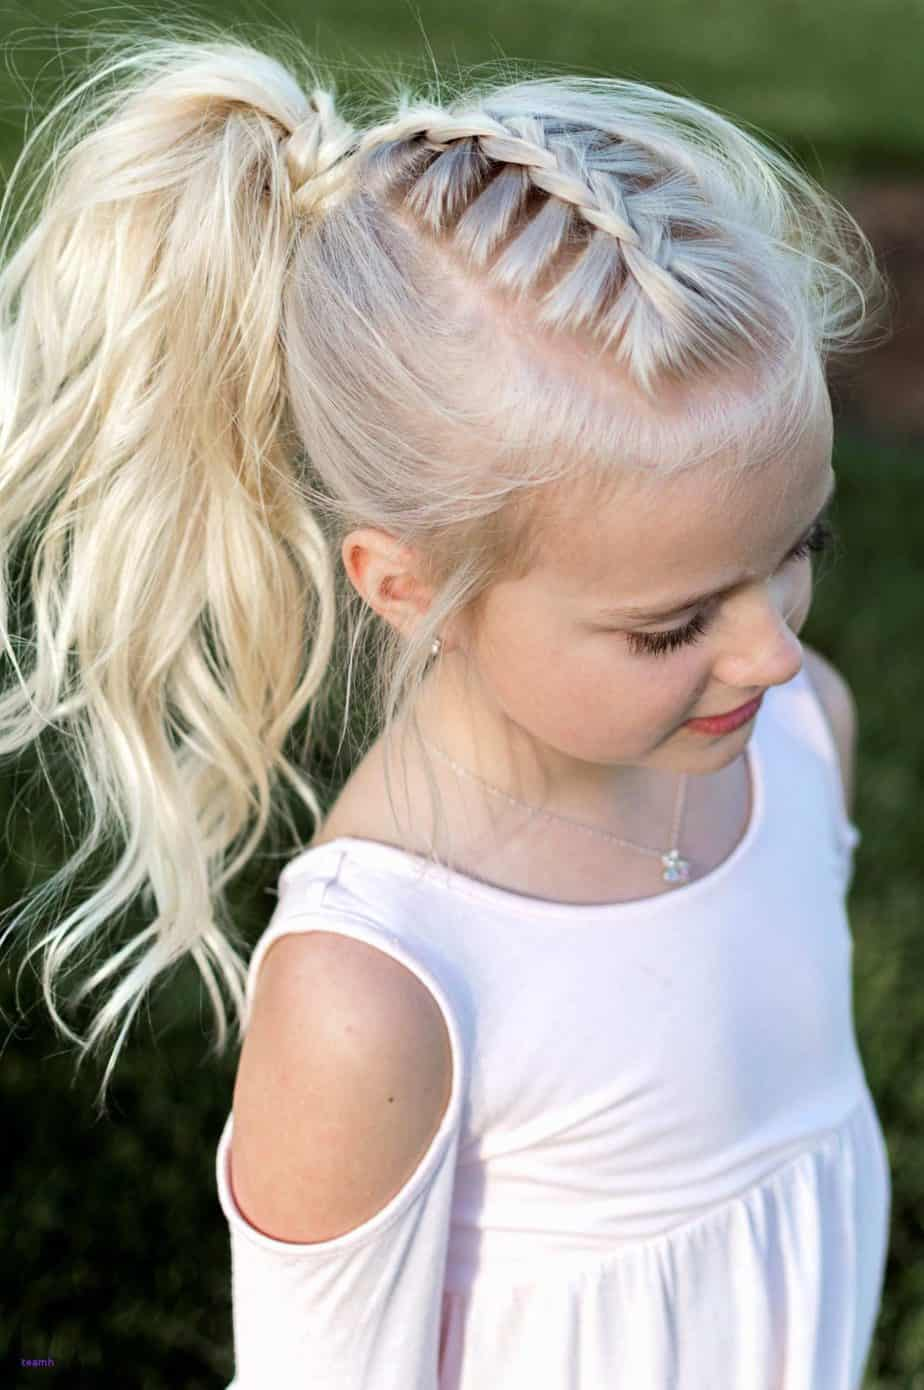 10 Cute And Easy Hairstyles For Girls 2021 Best Ideas For Kids And Teenagers Elegant Haircuts